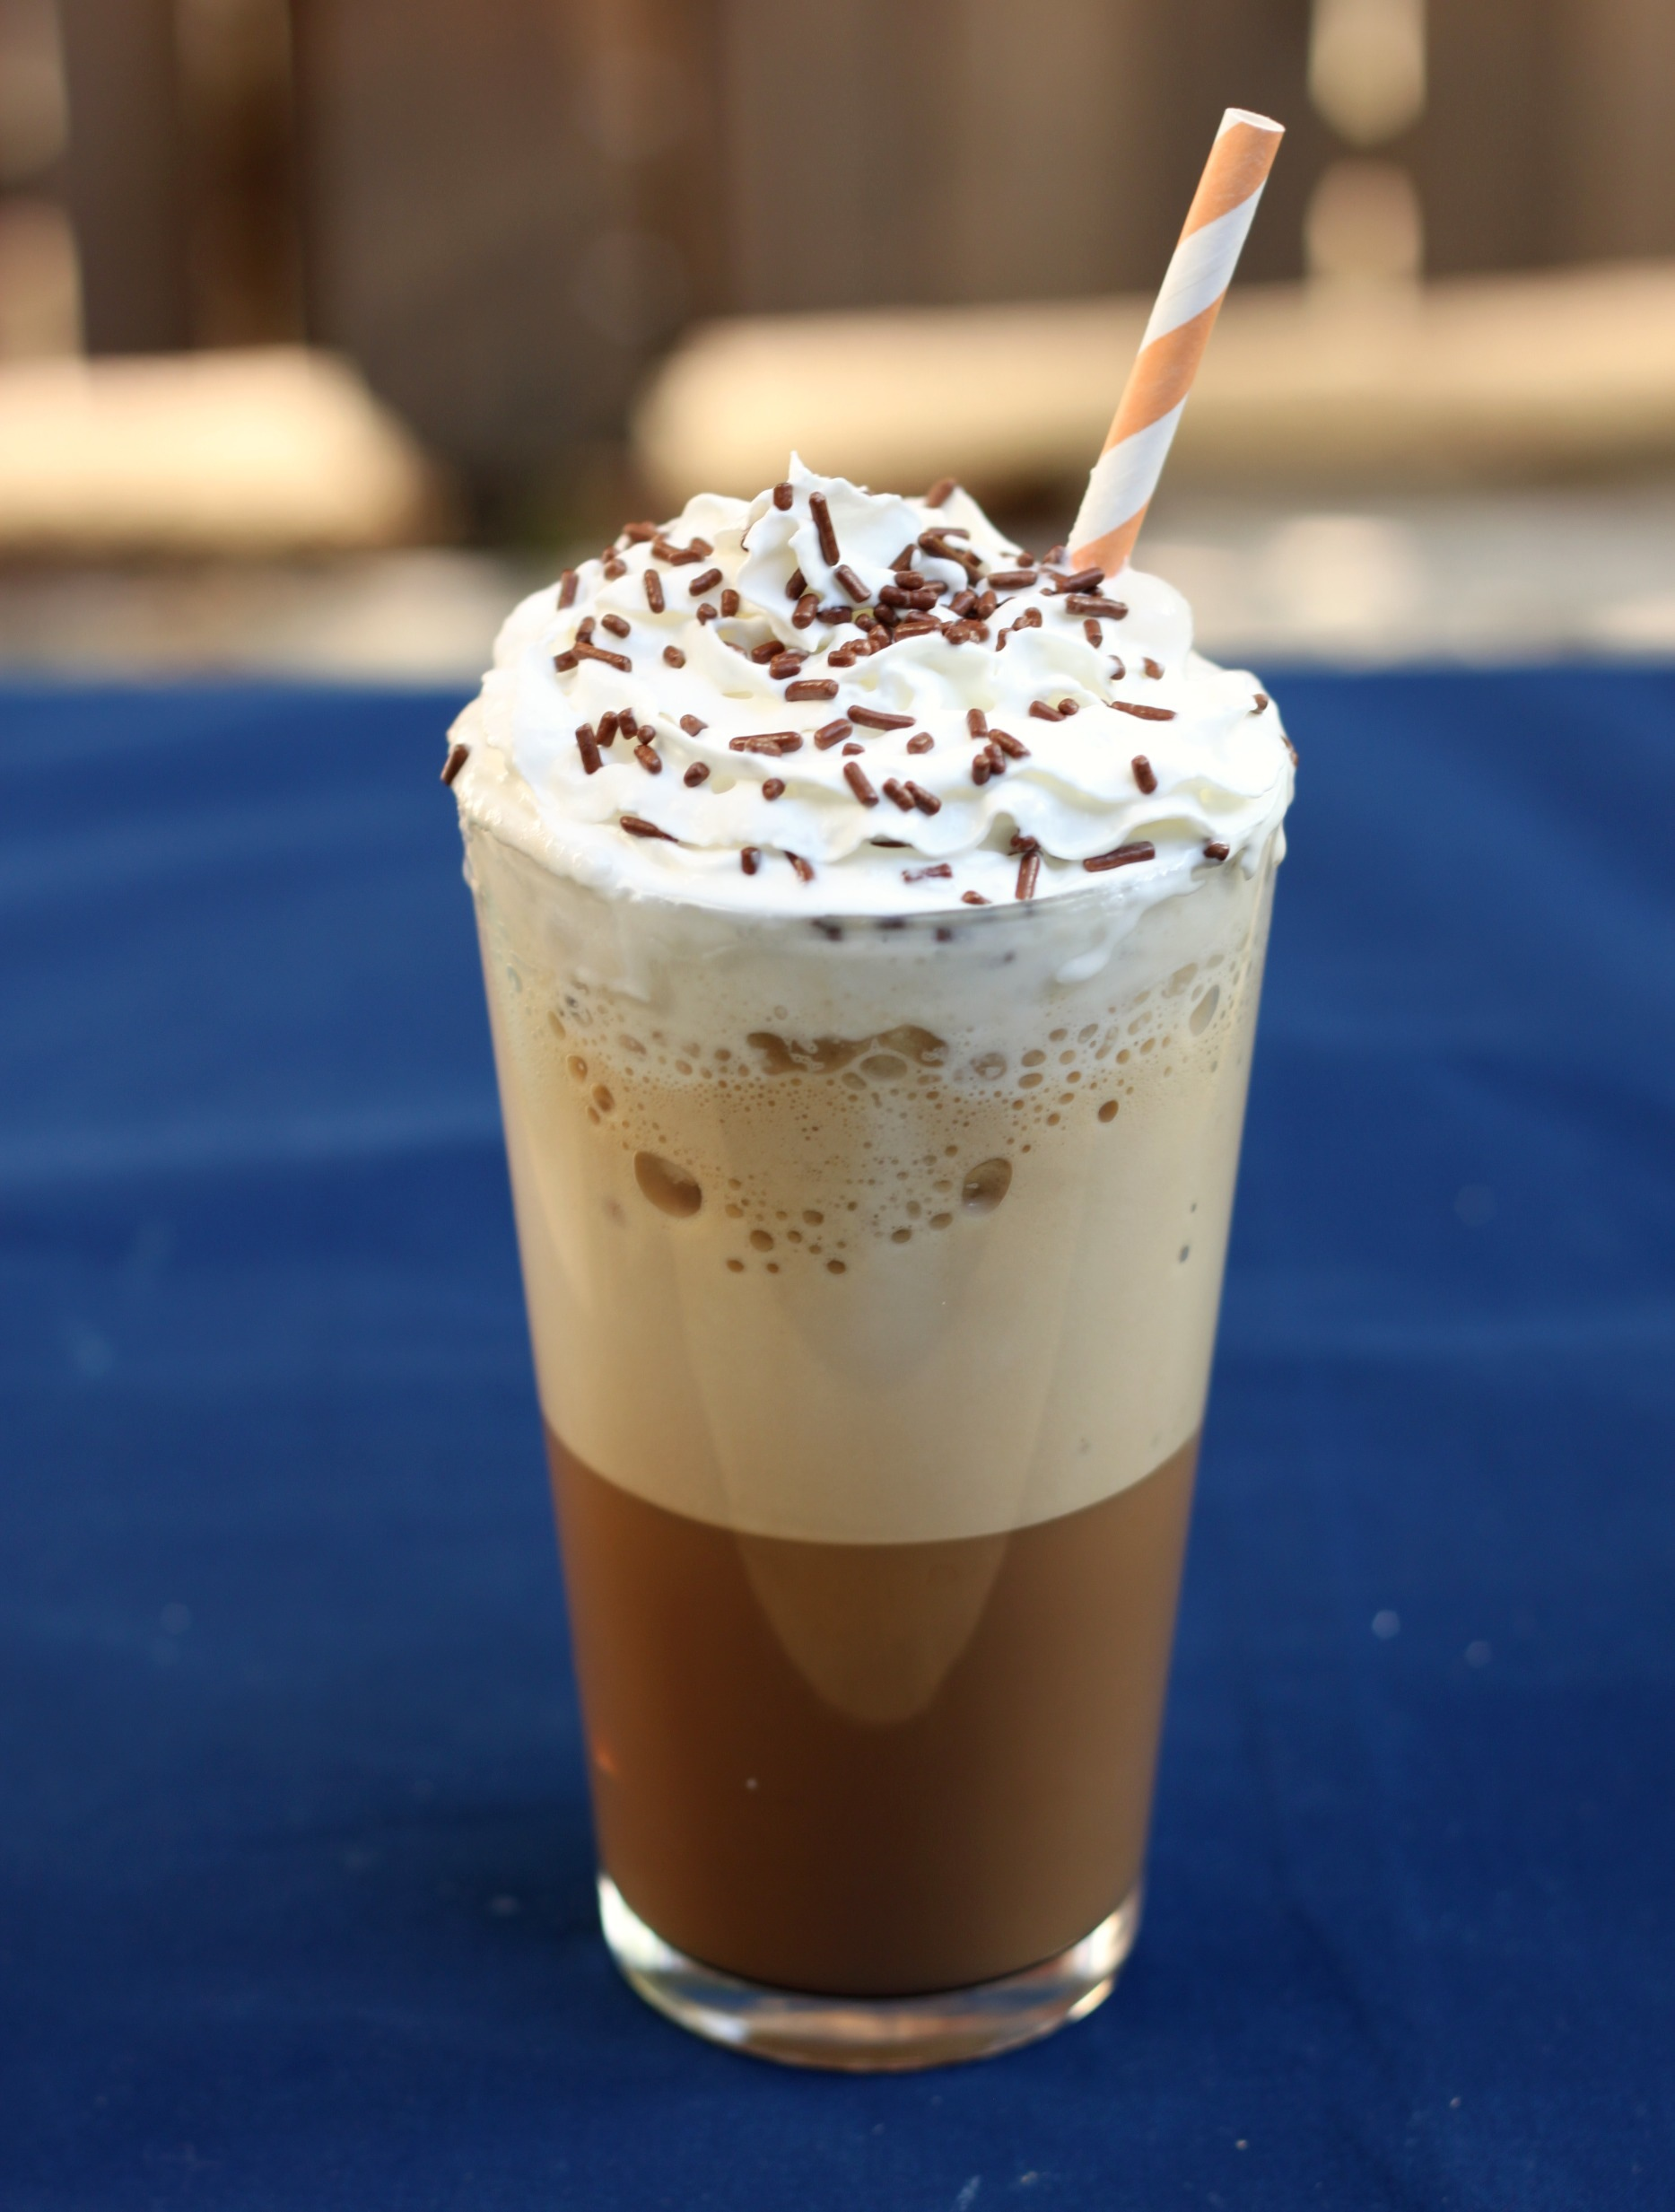 Homemade Blended Coffee